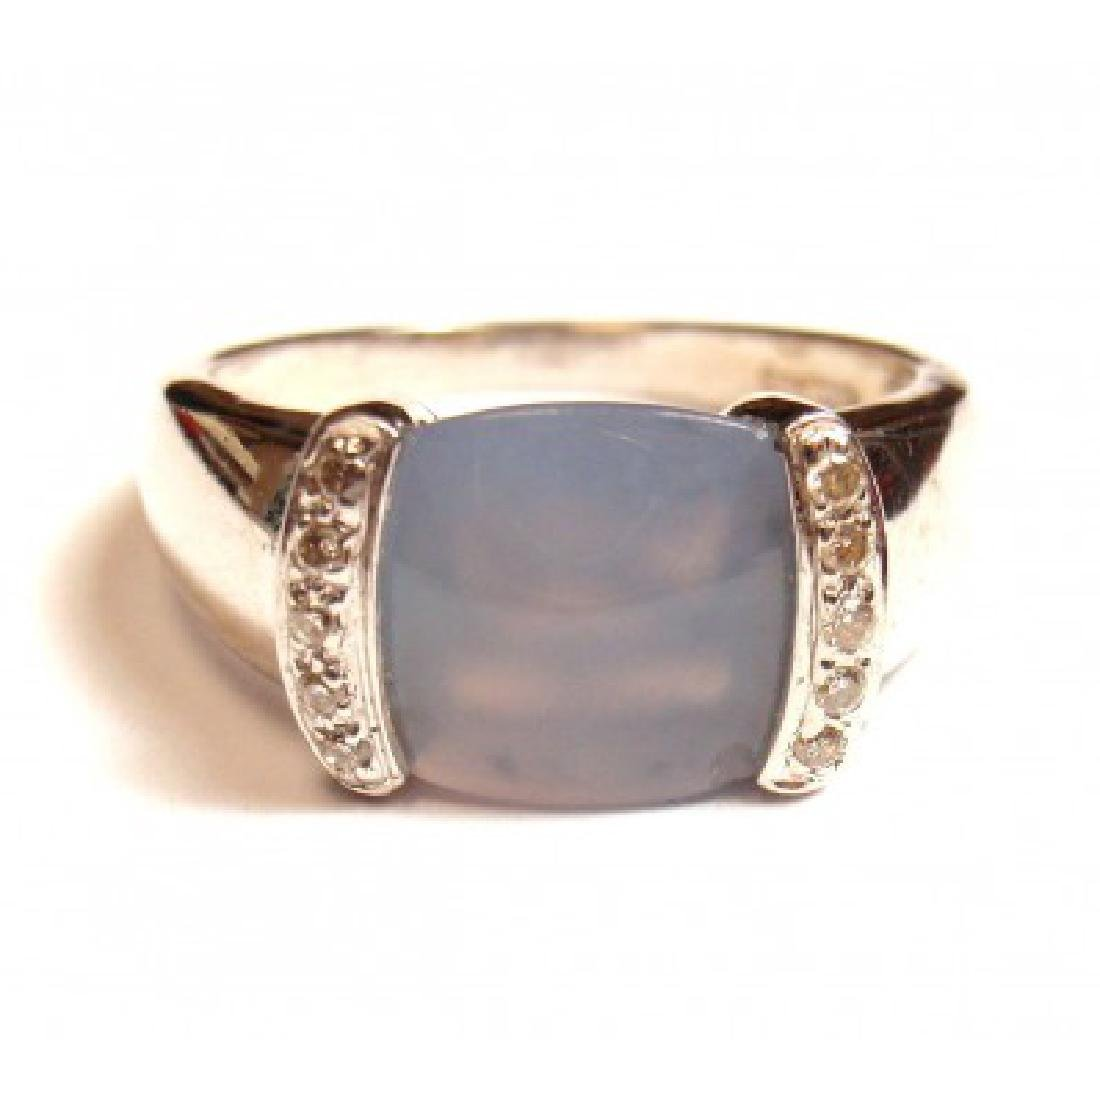 ESTATE 14K WHITE GOLD DIAMOND CHALCEDONY RING